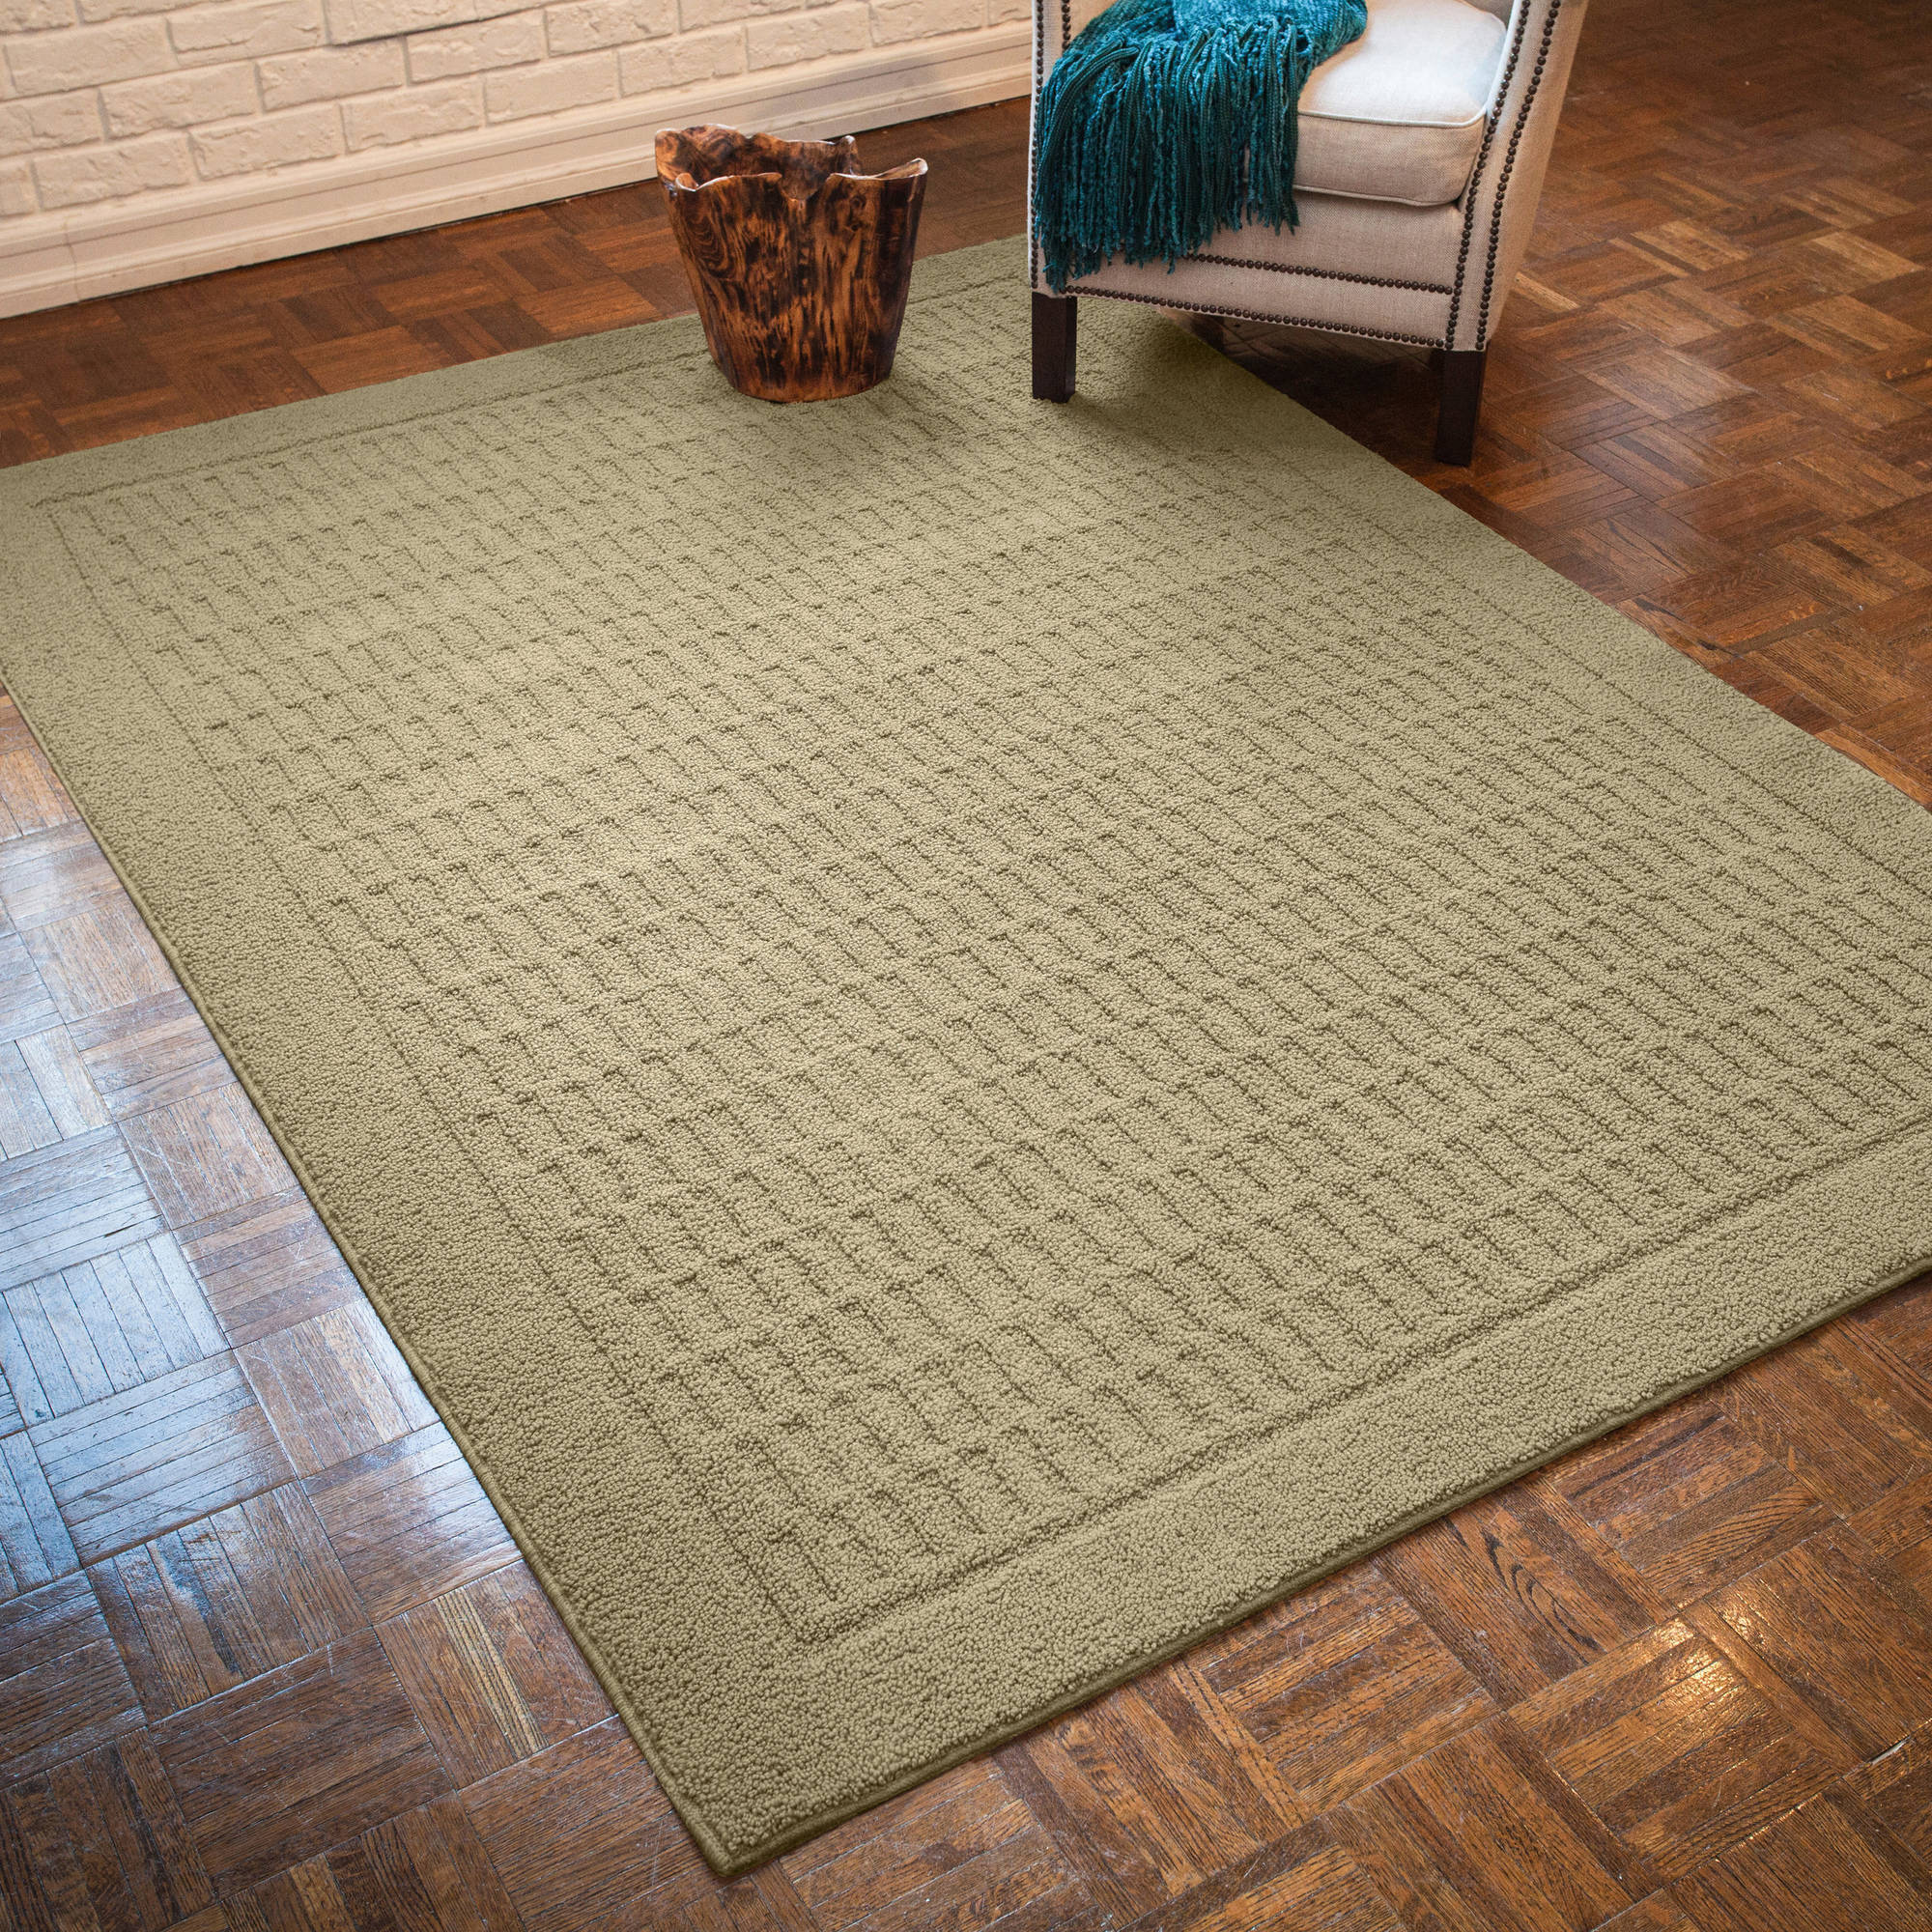 Popular throw rugs mainstays dylan nylon area rugs or runner collection xuvyqby